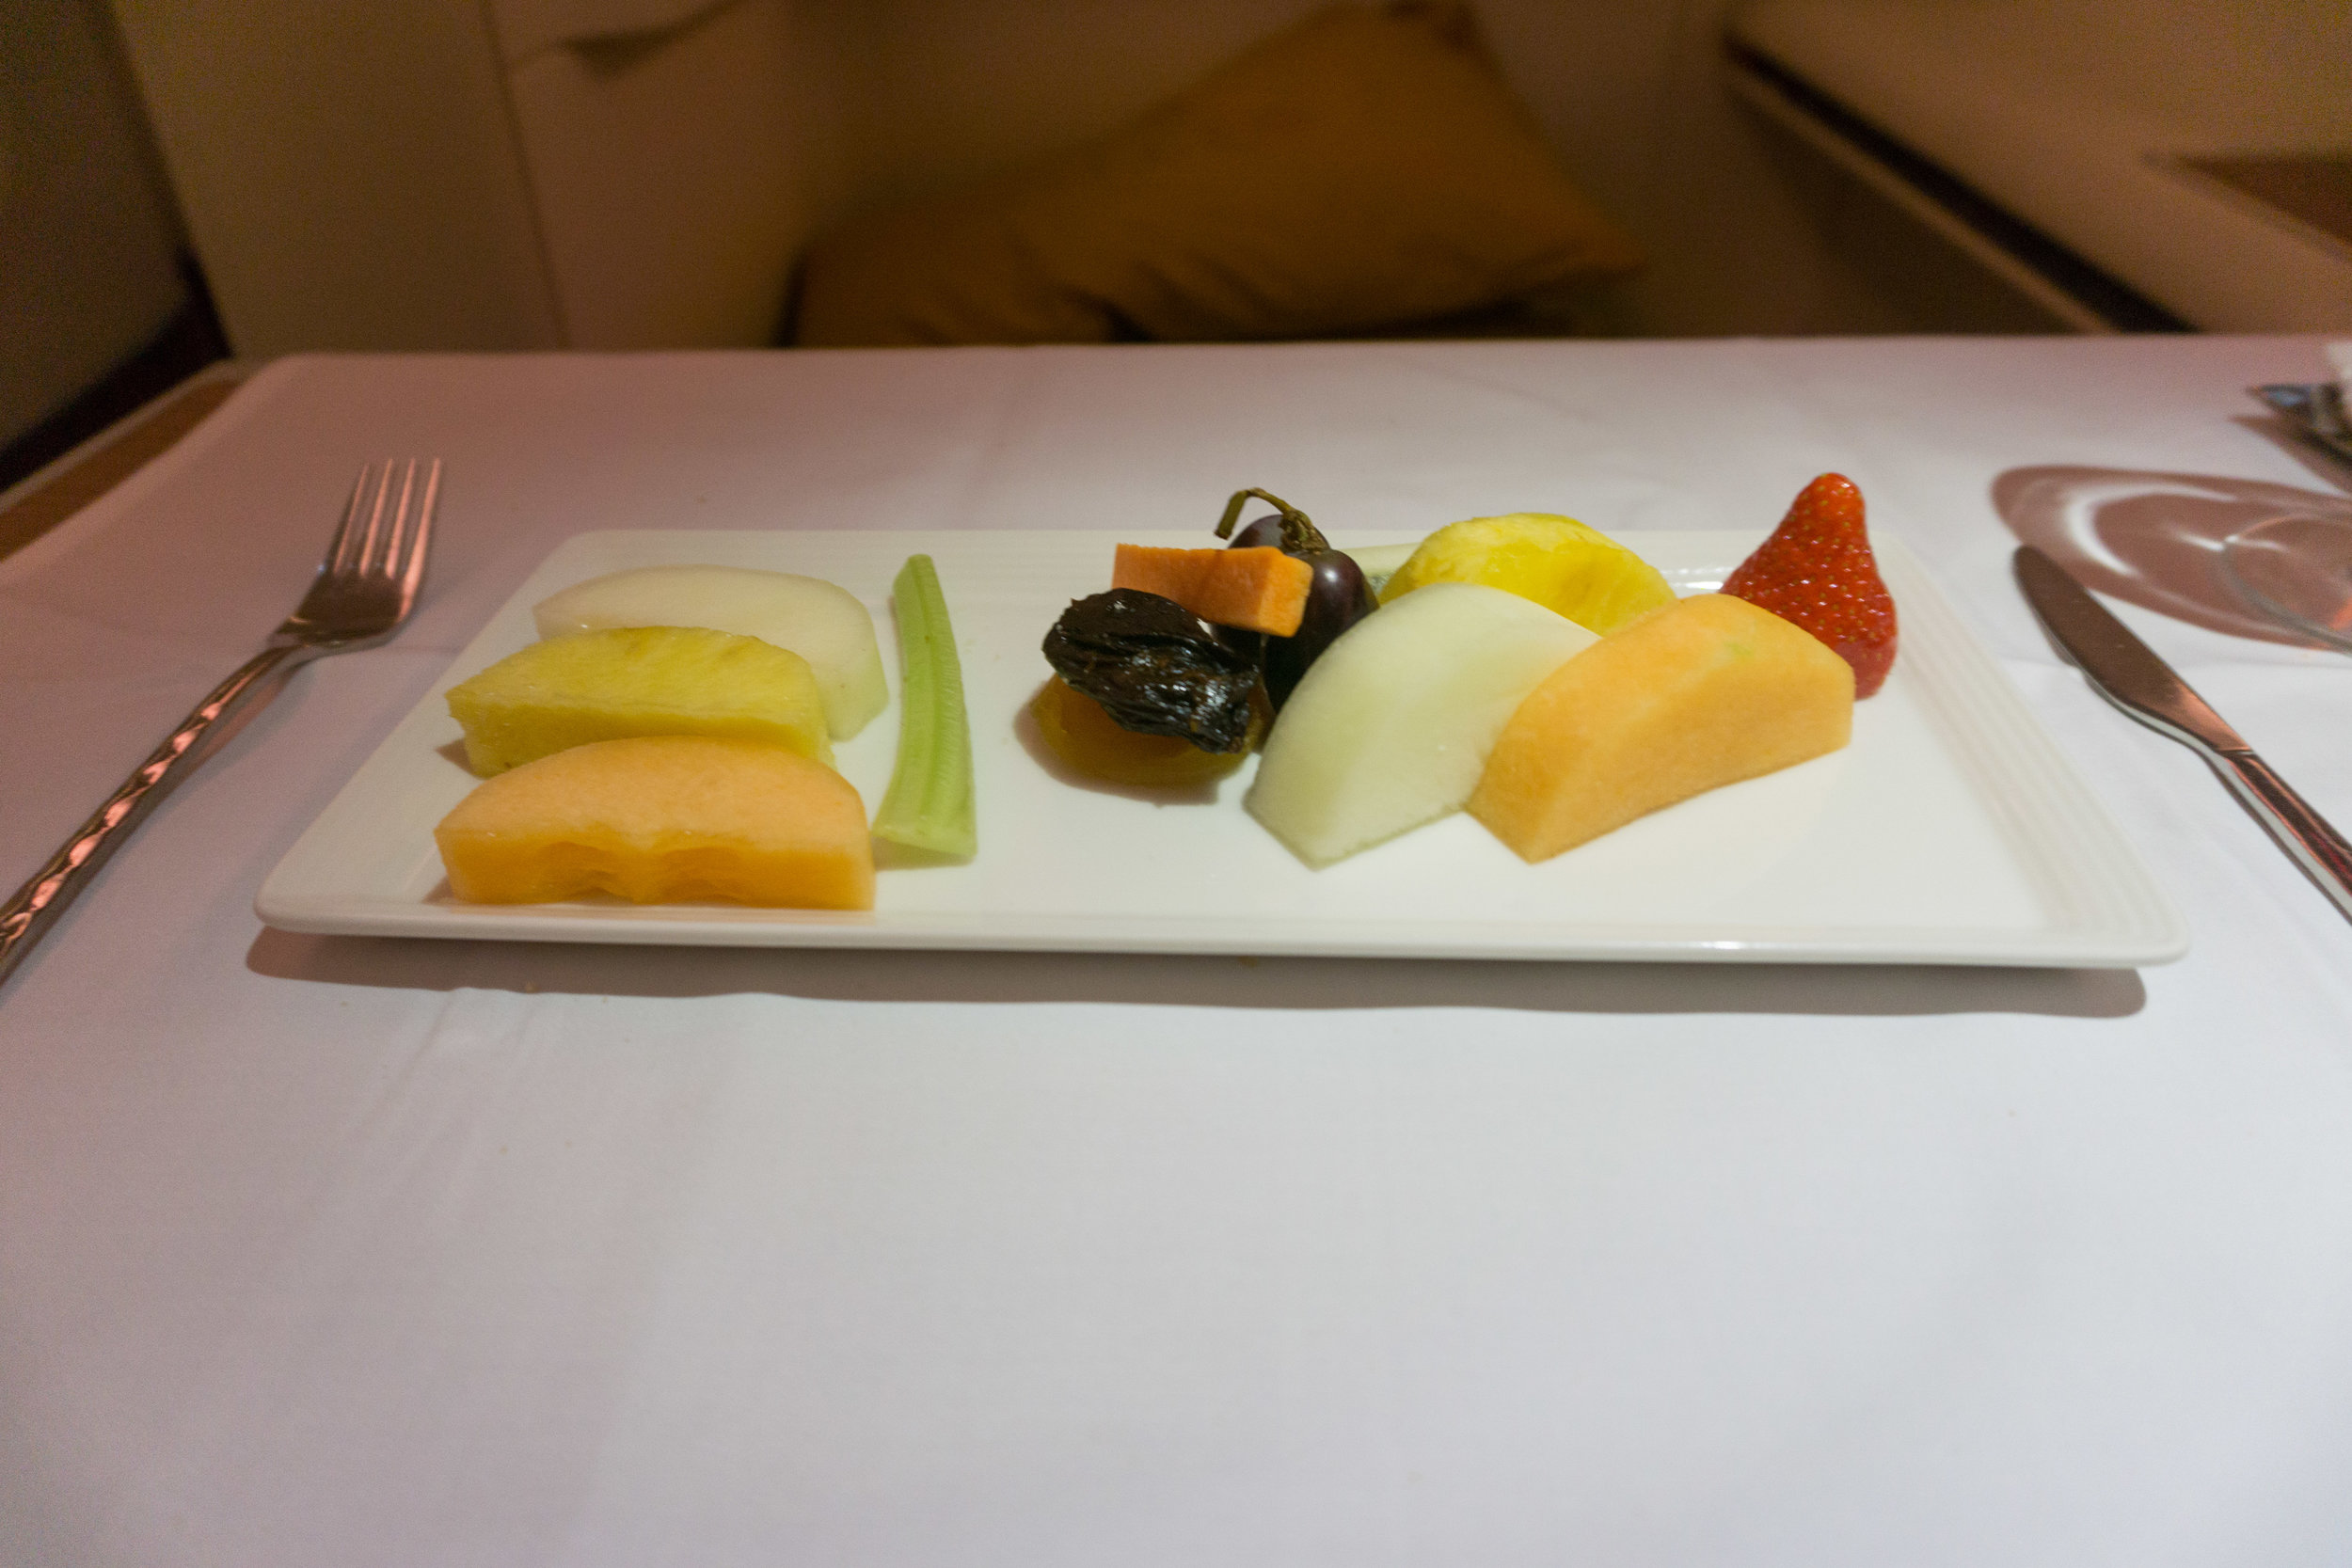 First course of dessert - fruit (I skipped out on the cheese)